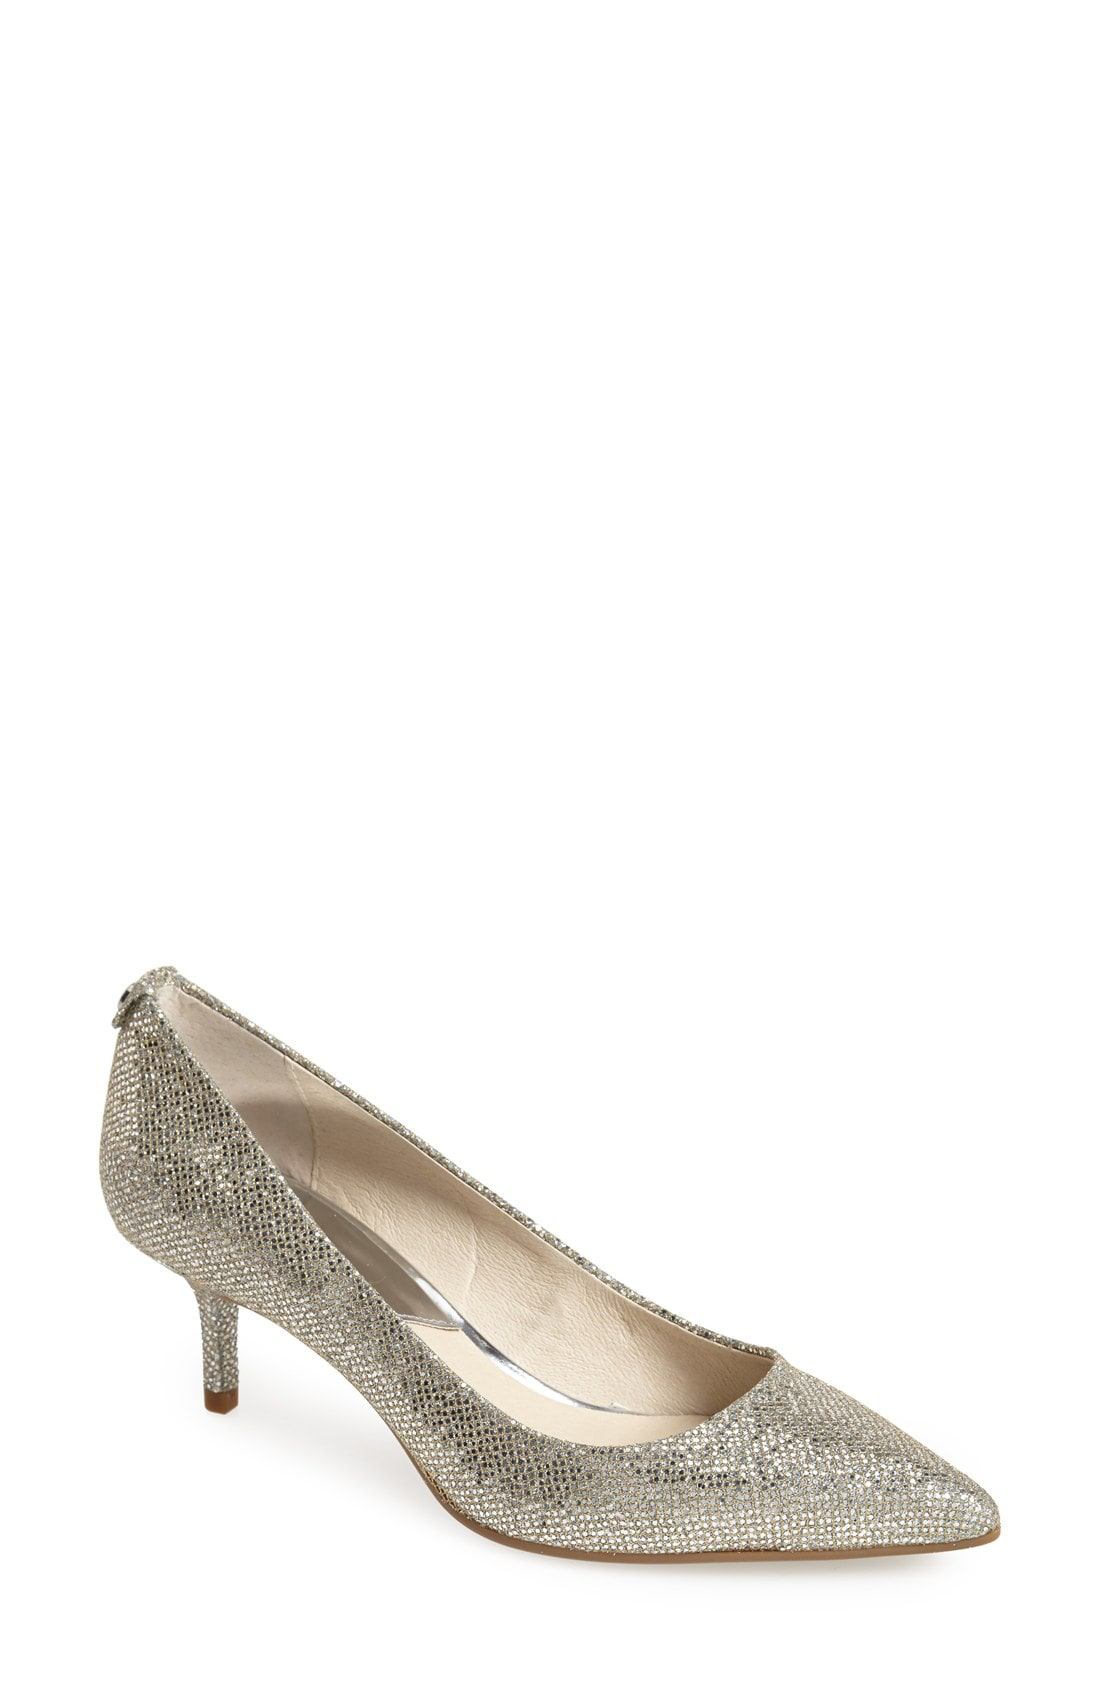 783c4a7fb54 Michael Michael Kors Mk Flex Kitten Heel Pumps In Silver Glitter ...